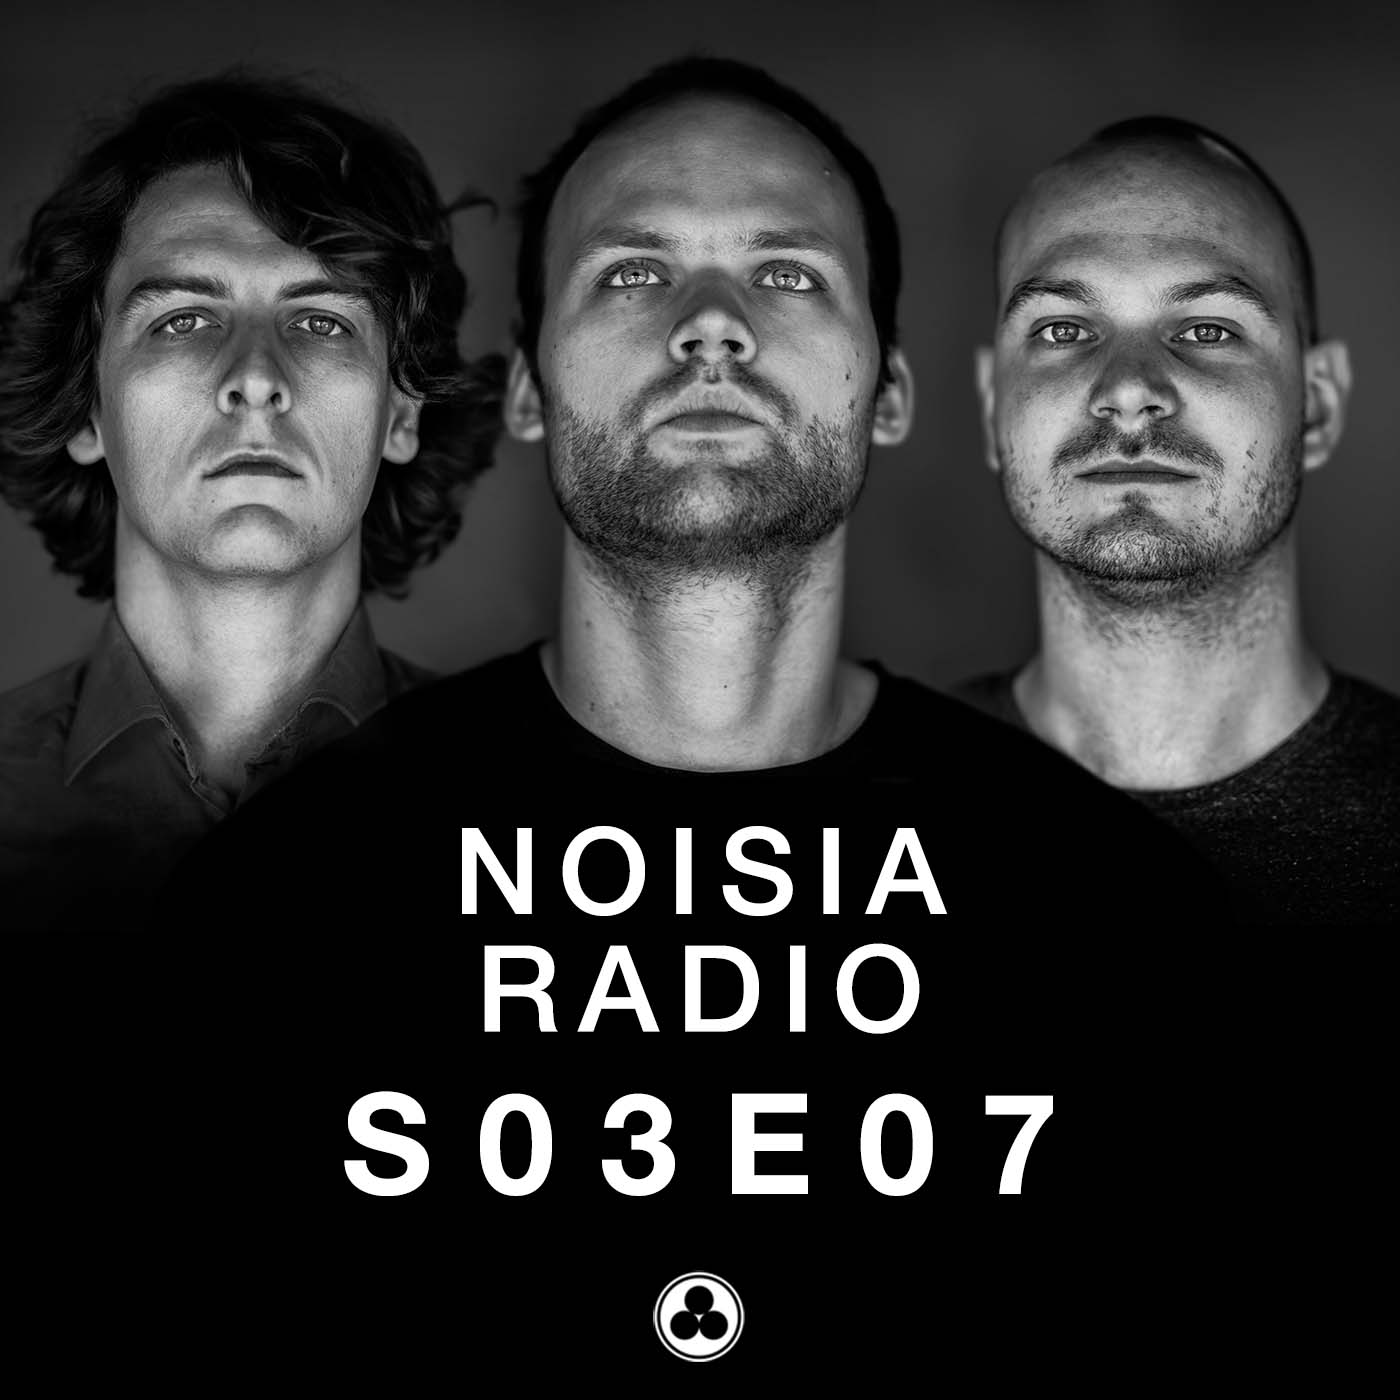 Noisia Radio S03E07